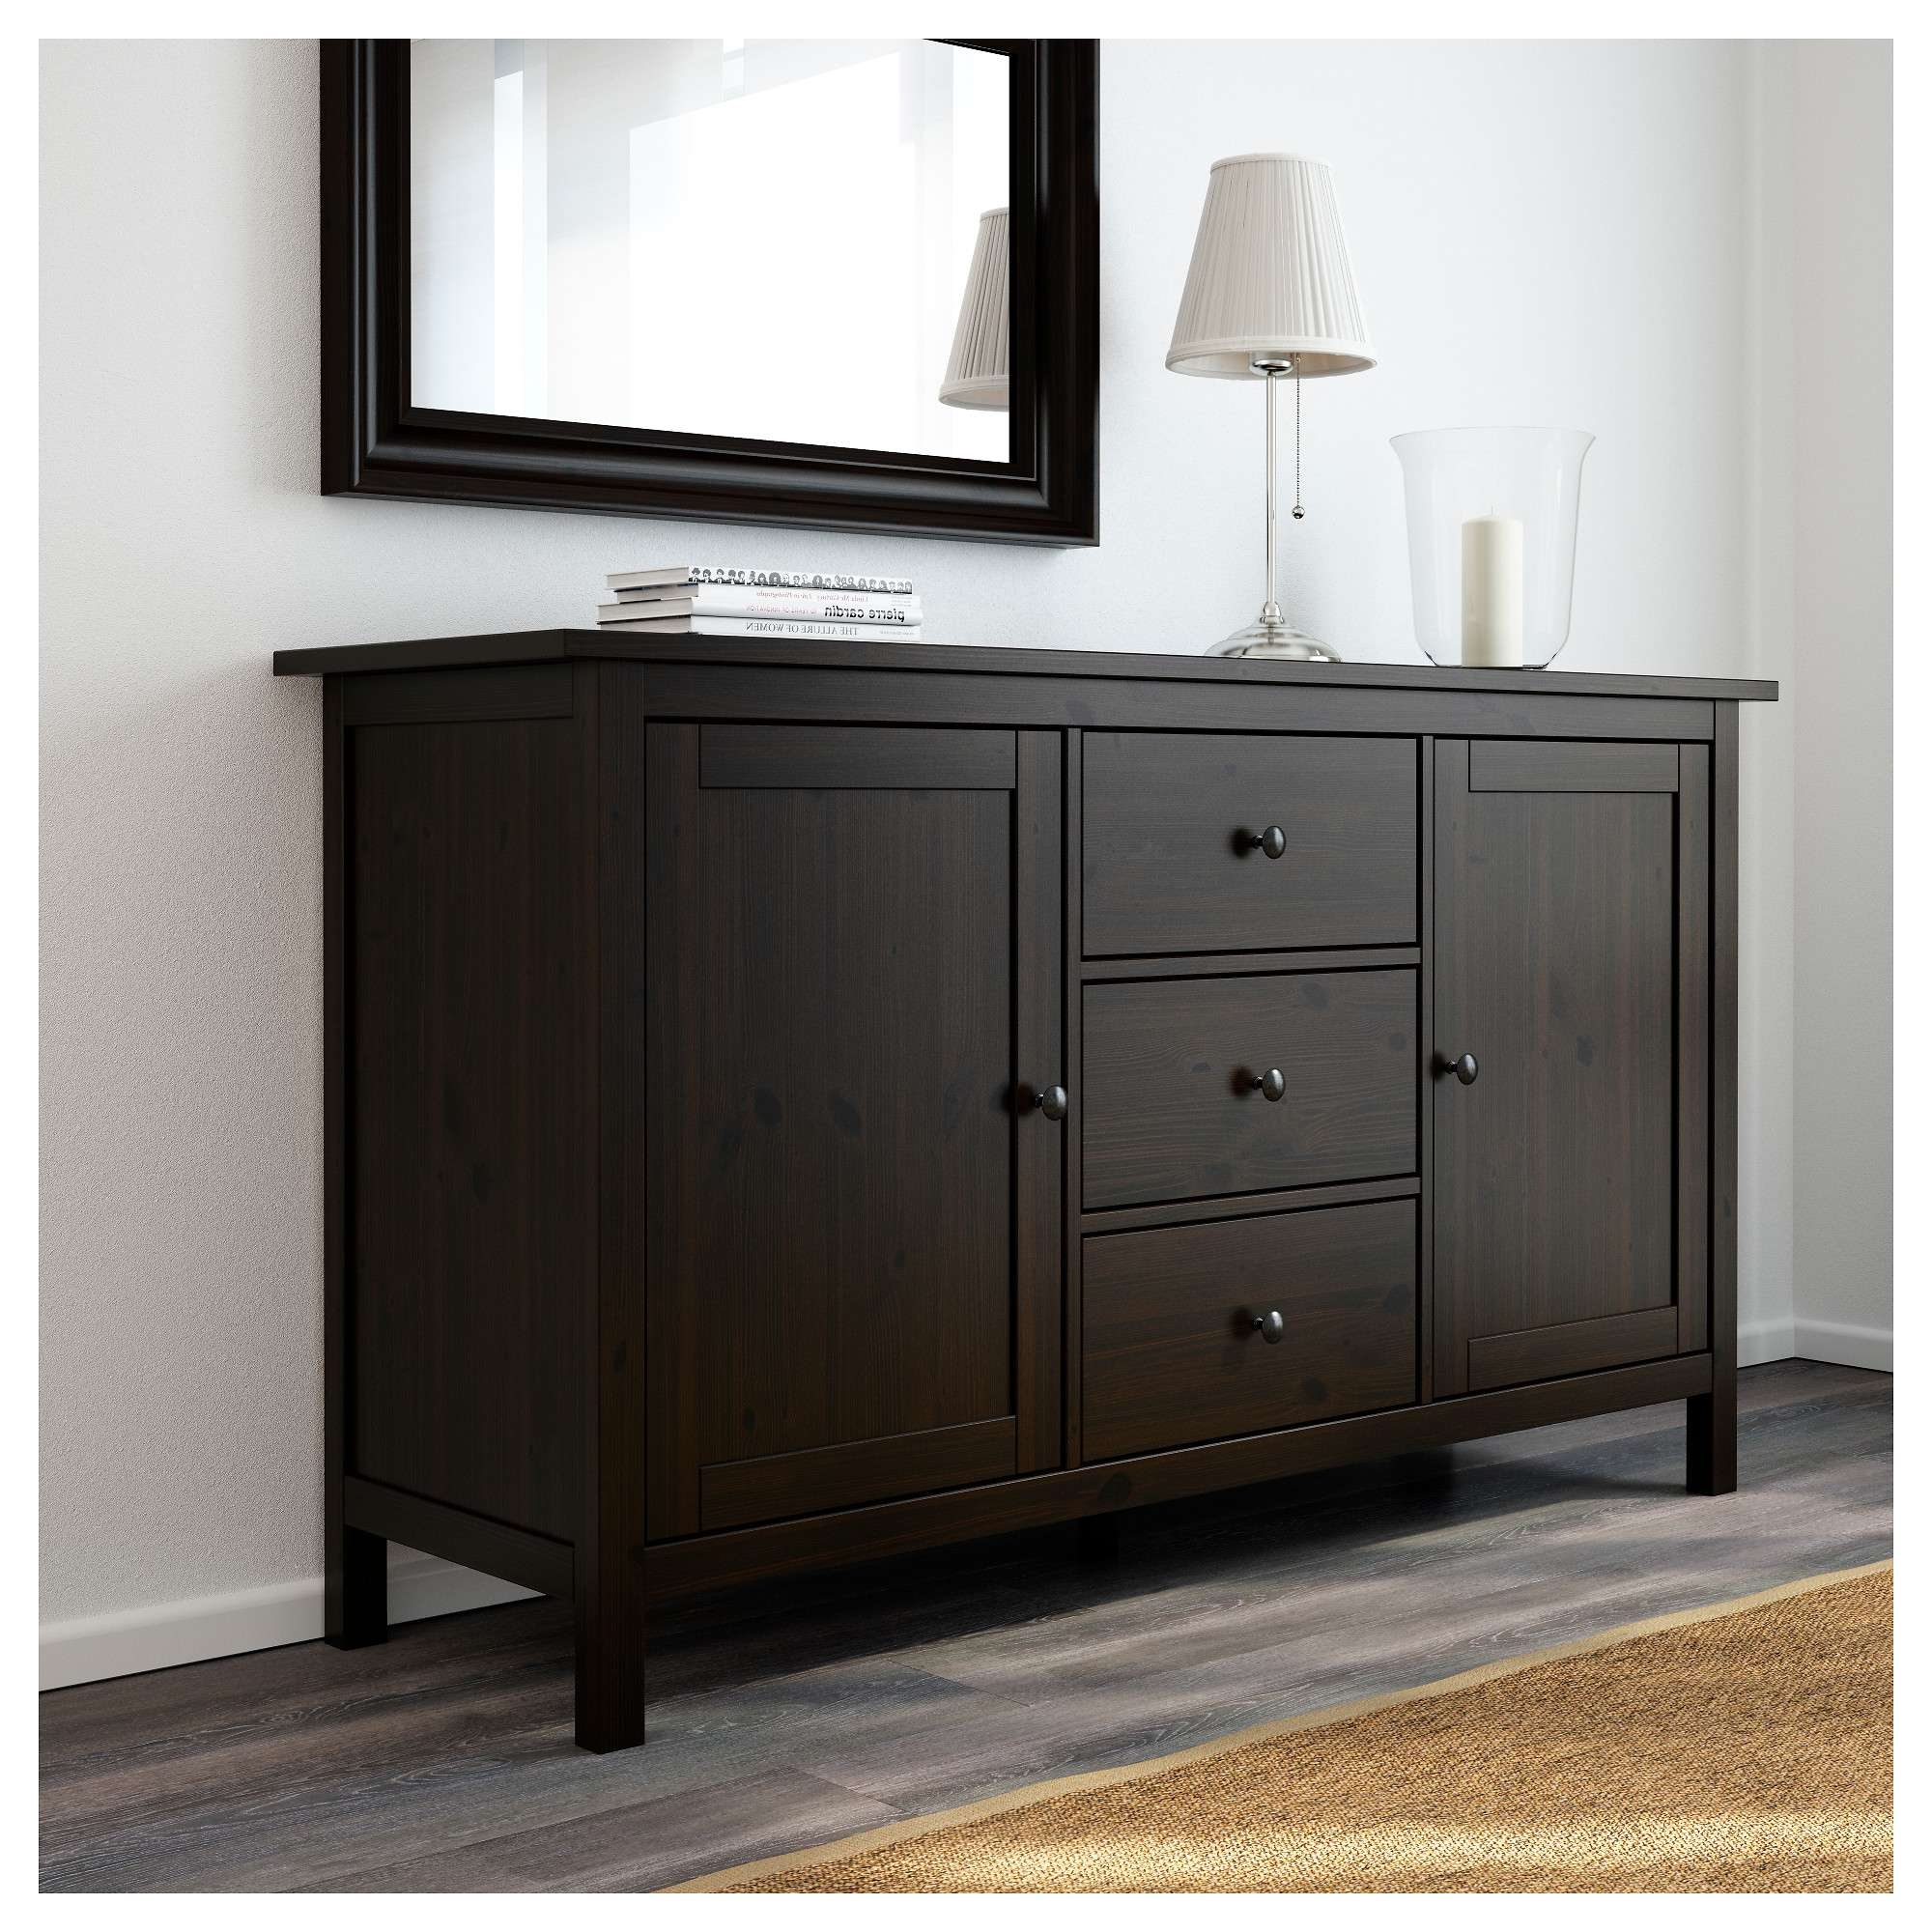 Hemnes Sideboard Black Brown 157X88 Cm – Ikea With Dark Brown Sideboards (View 7 of 20)